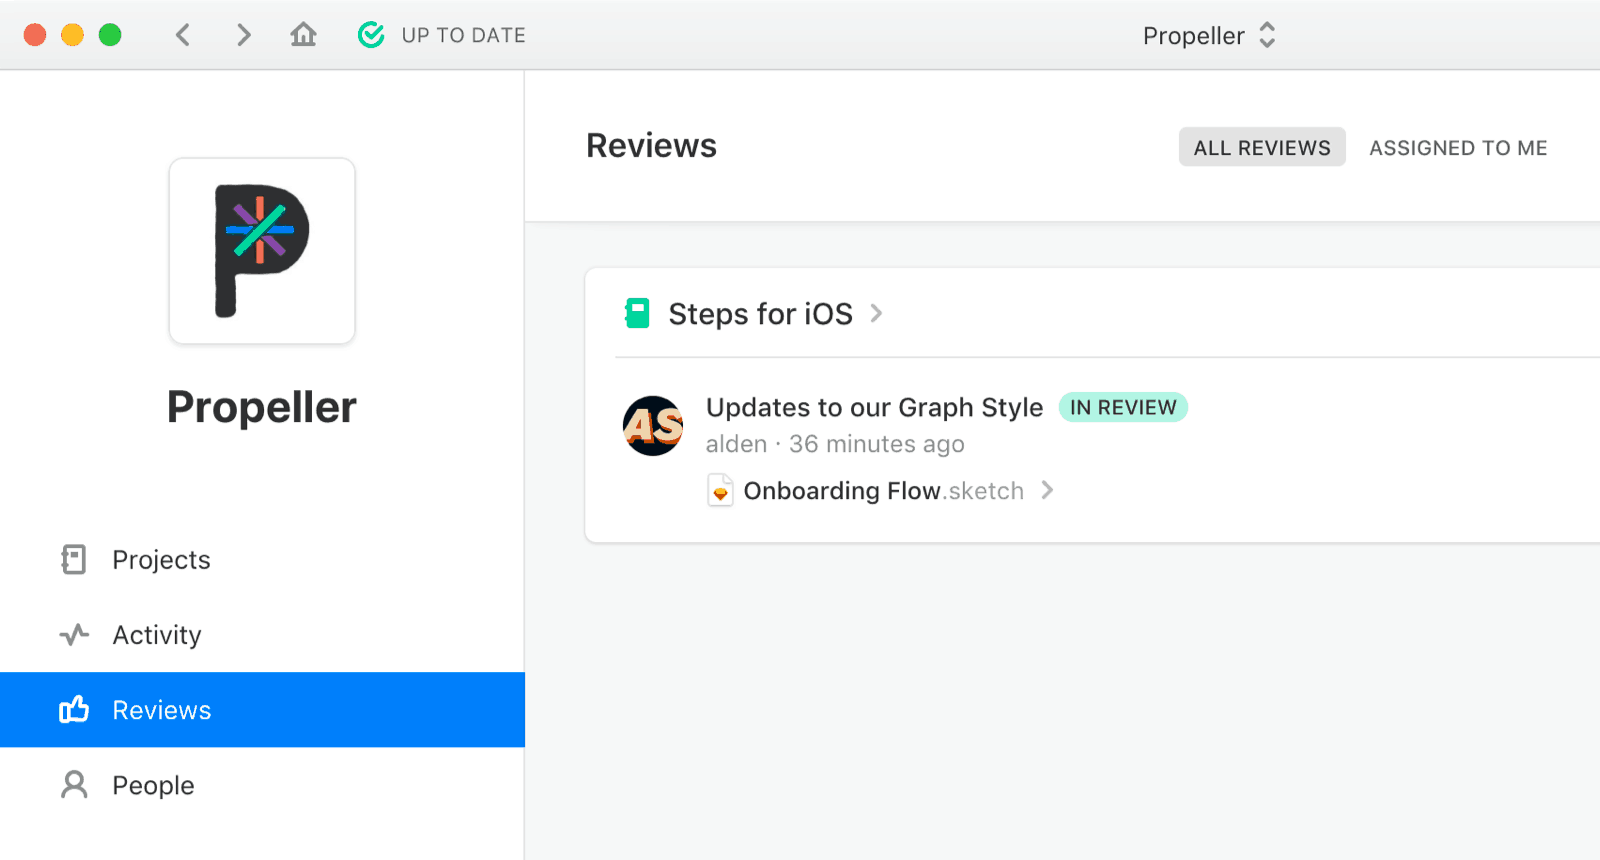 Review Requests - Stakeholder Overview